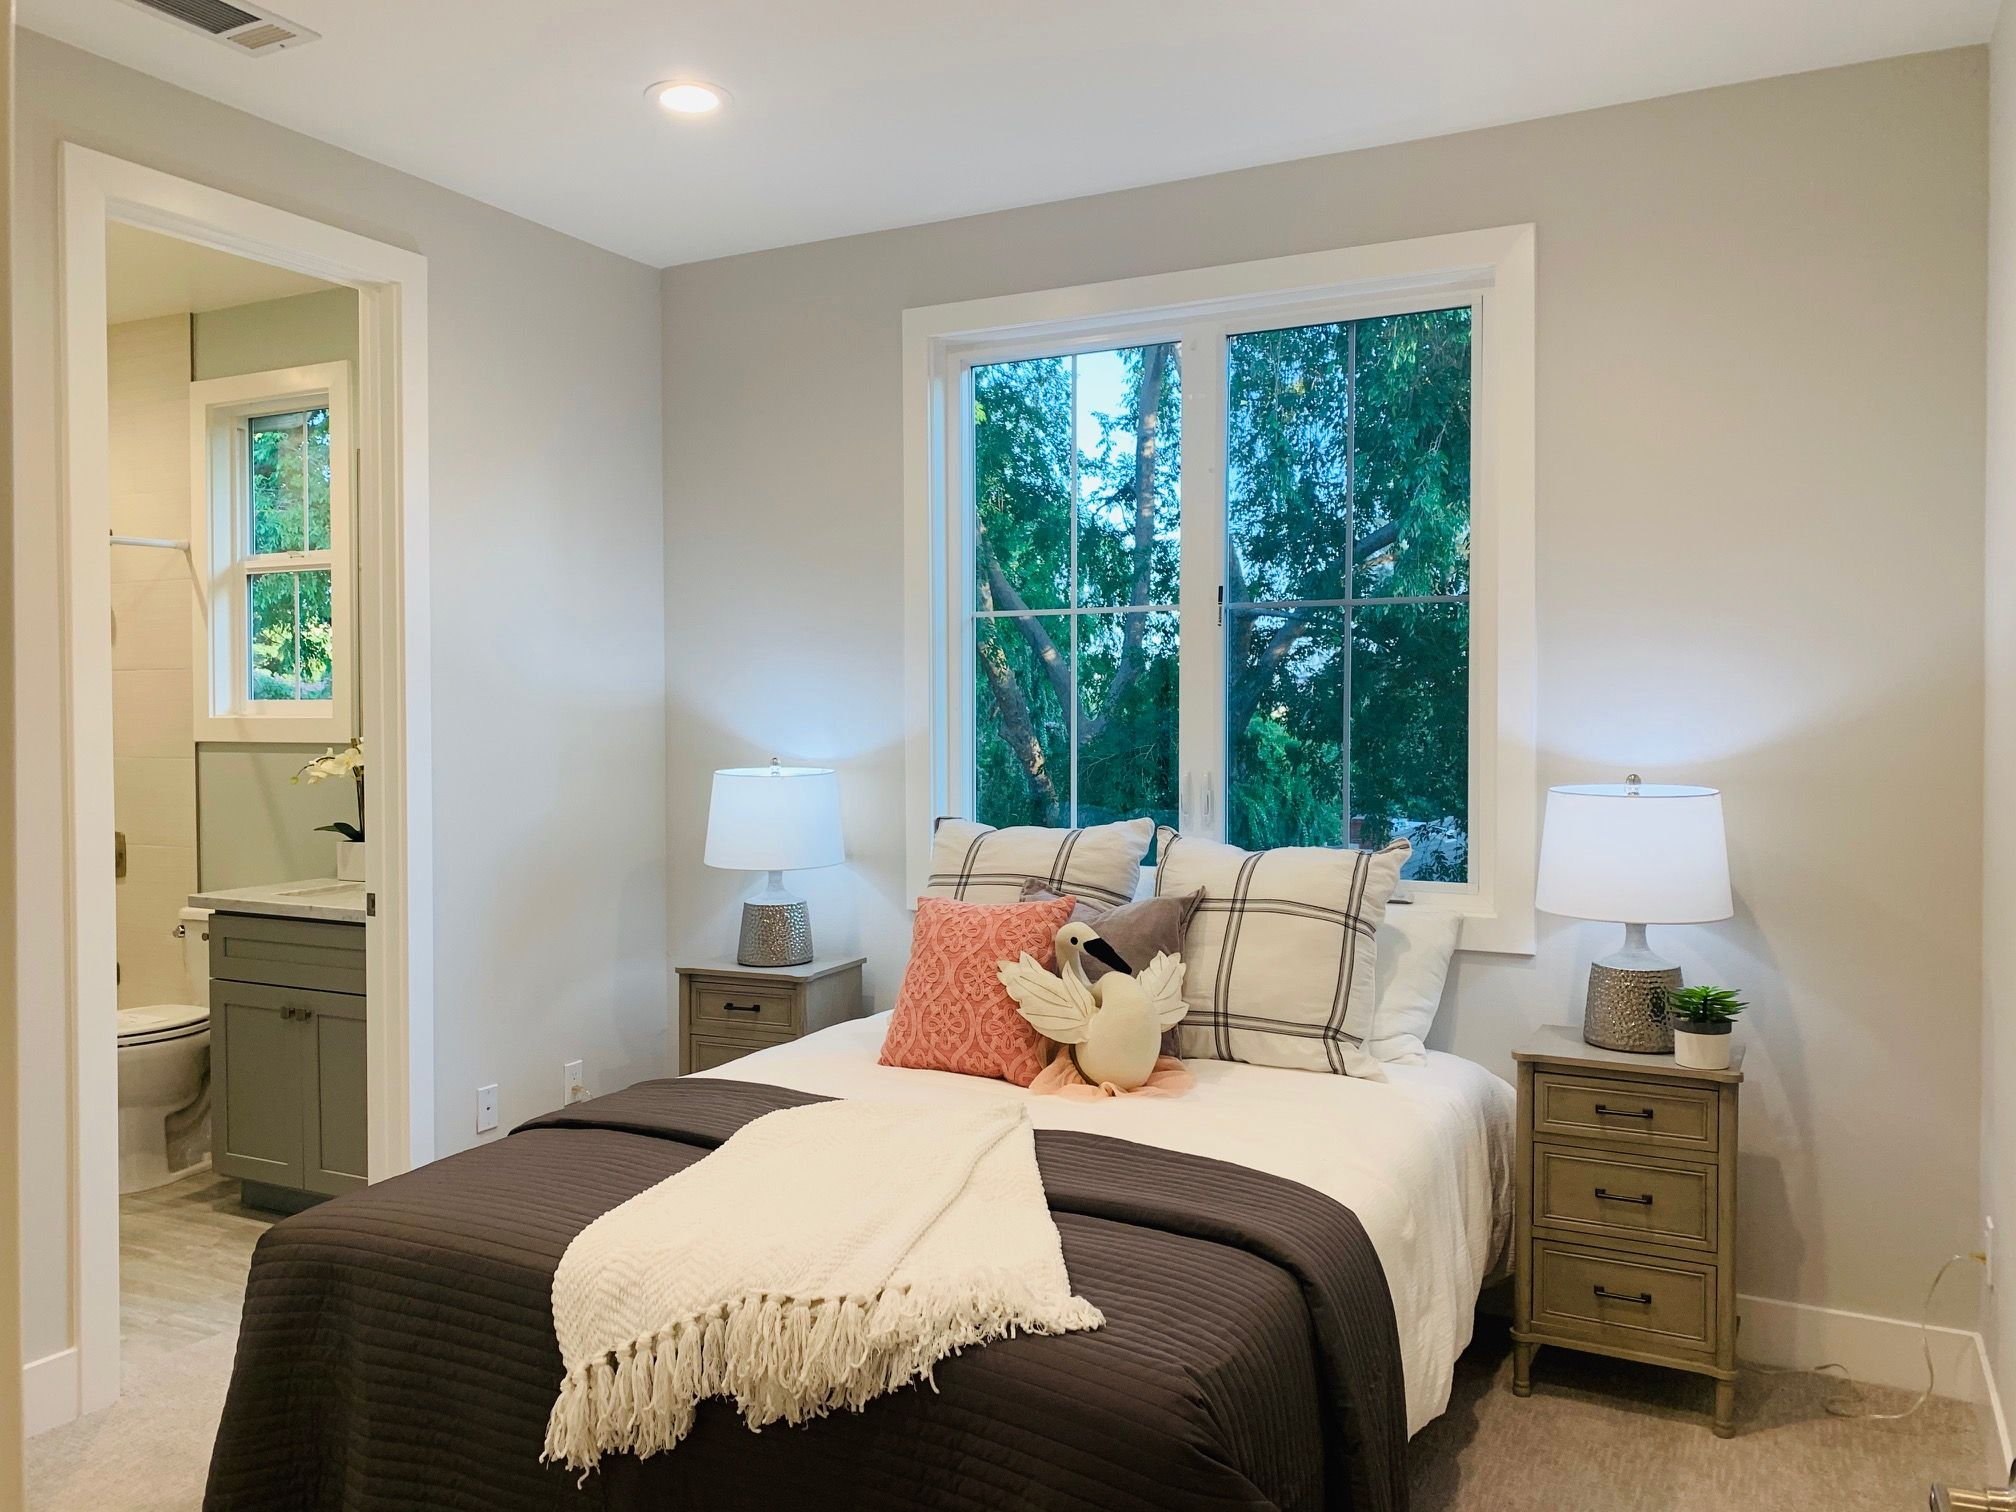 Bedroom featured in the 1790 San Miguel Dr By WingOn Construction in Oakland-Alameda, CA